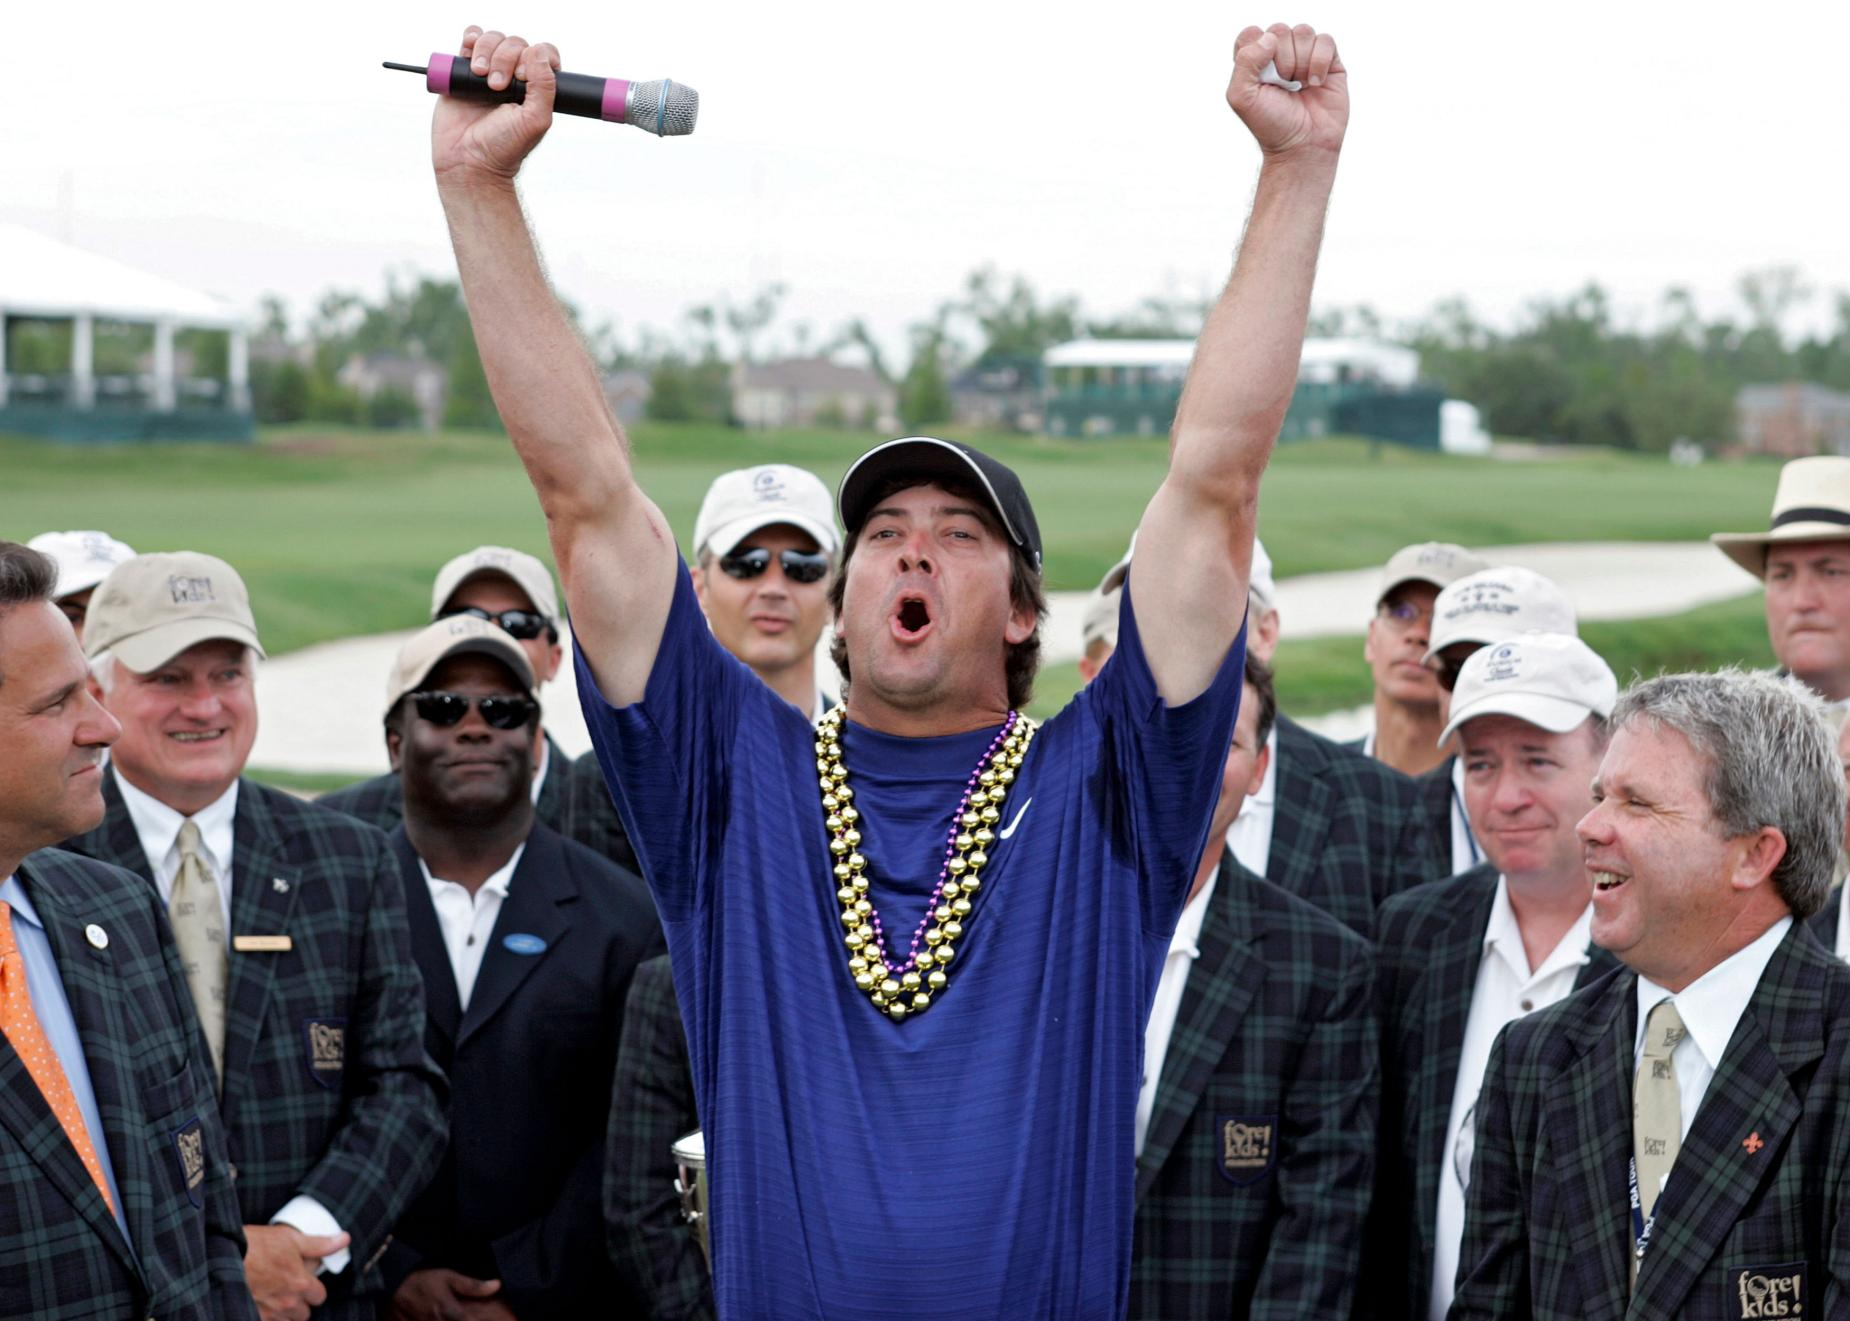 chris-couch-zurich-classic-new-orleans-2006-celebration.jpg